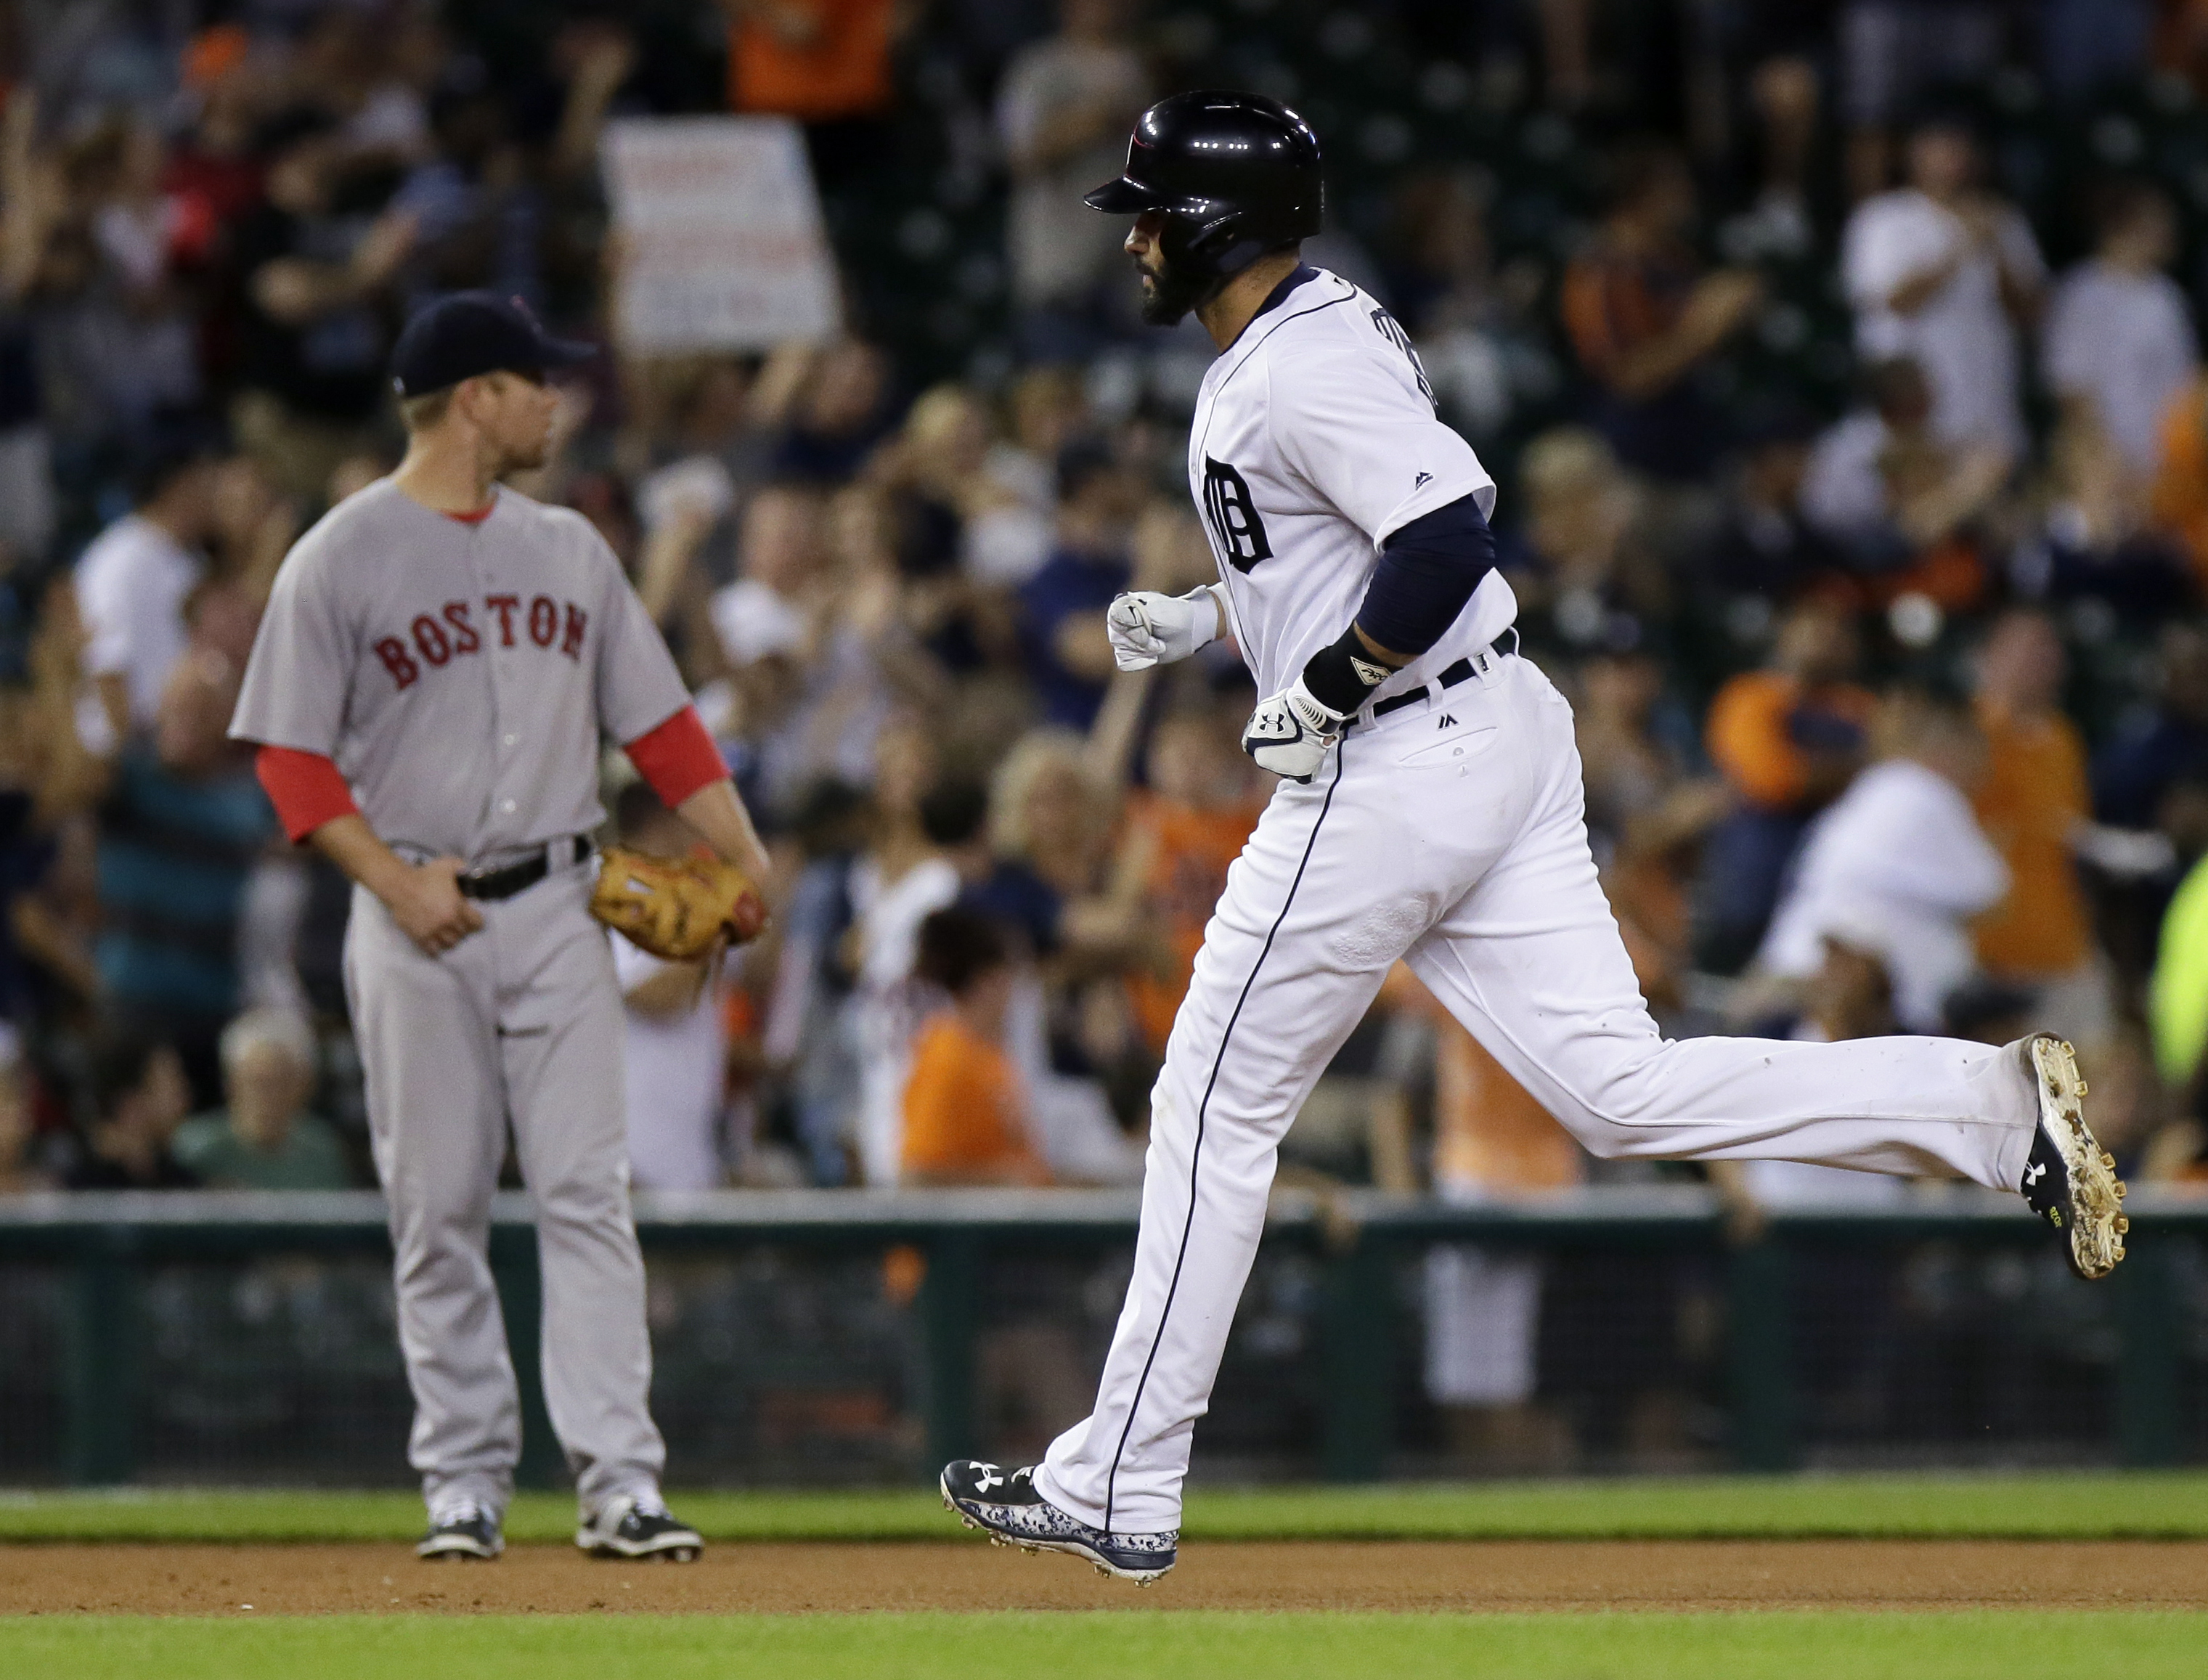 Detroit Tigers' J.D. Martinez rounds the bases past Boston Red Sox third baseman Aaron Hill after hitting a solo home run during the seventh inning of a baseball game Saturday, Aug. 20, 2016, in Detroit. (AP Photo/Duane Burleson)